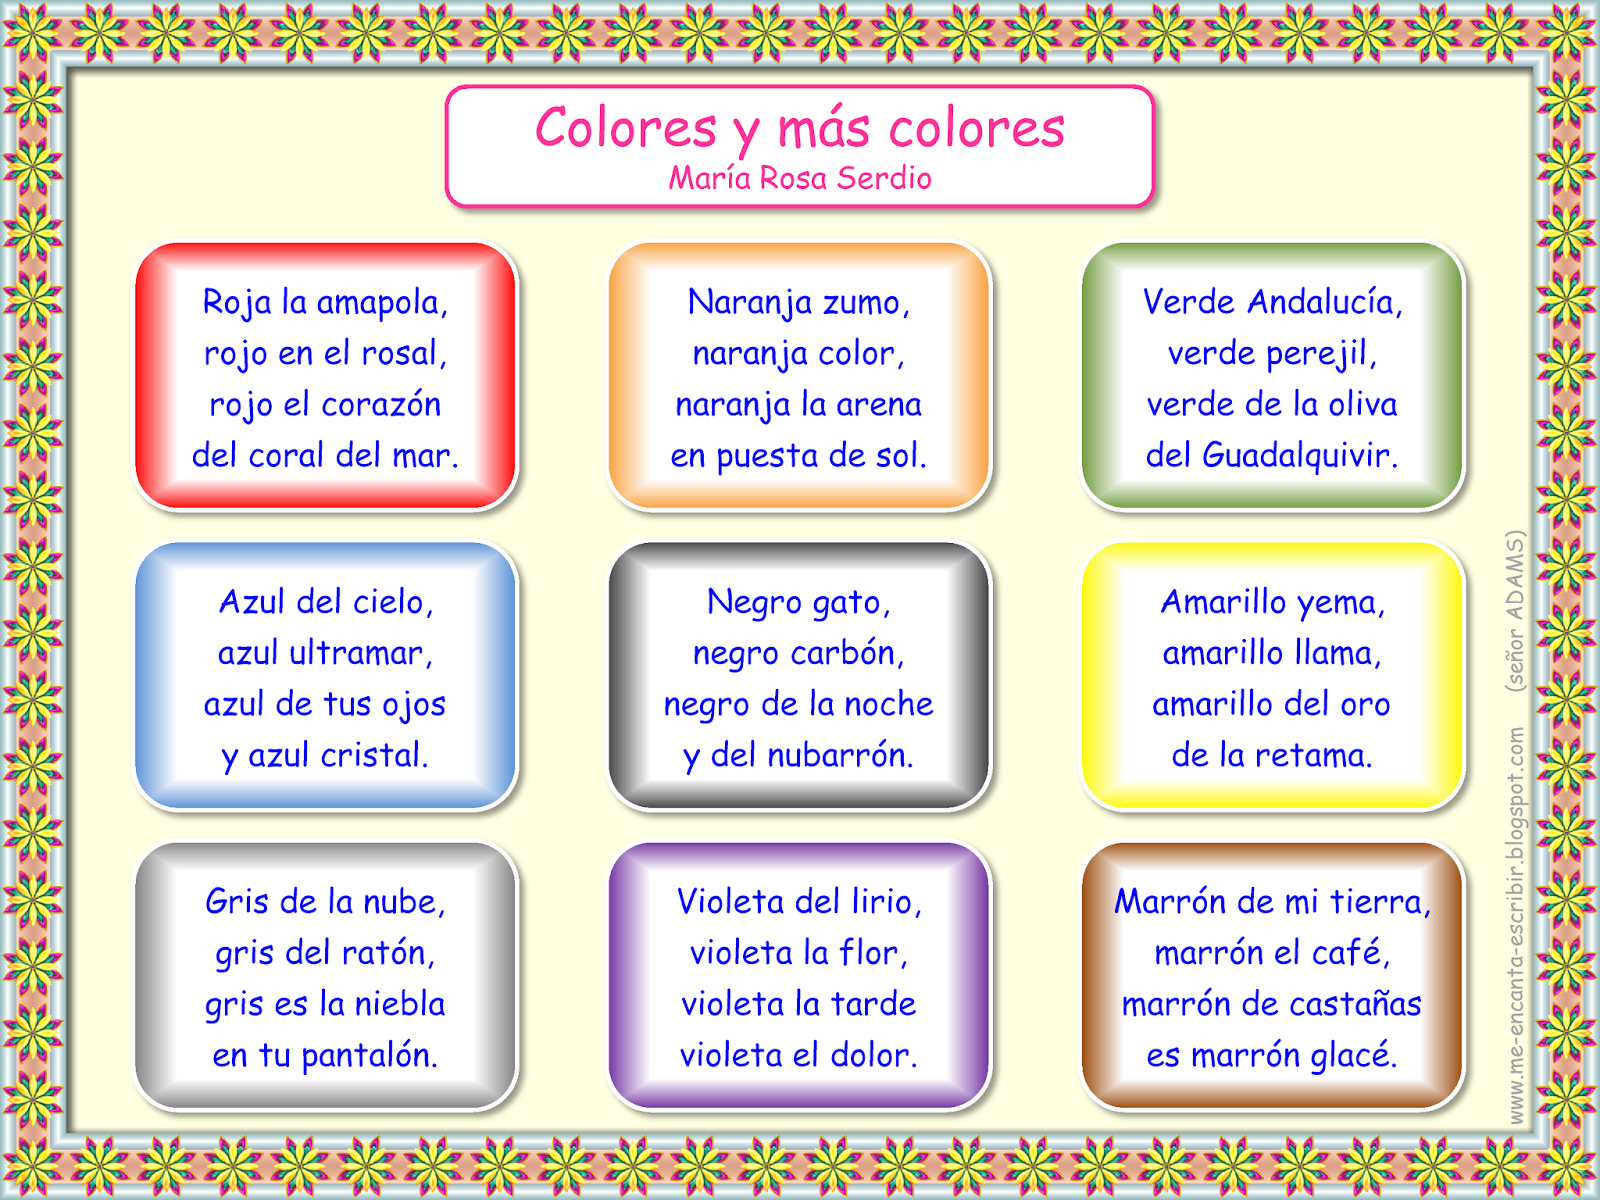 Spanish poems for kids short color poems in spanish colors in spanish poems for kids short color poems in spanish colors in spanish http robcynllc Image collections